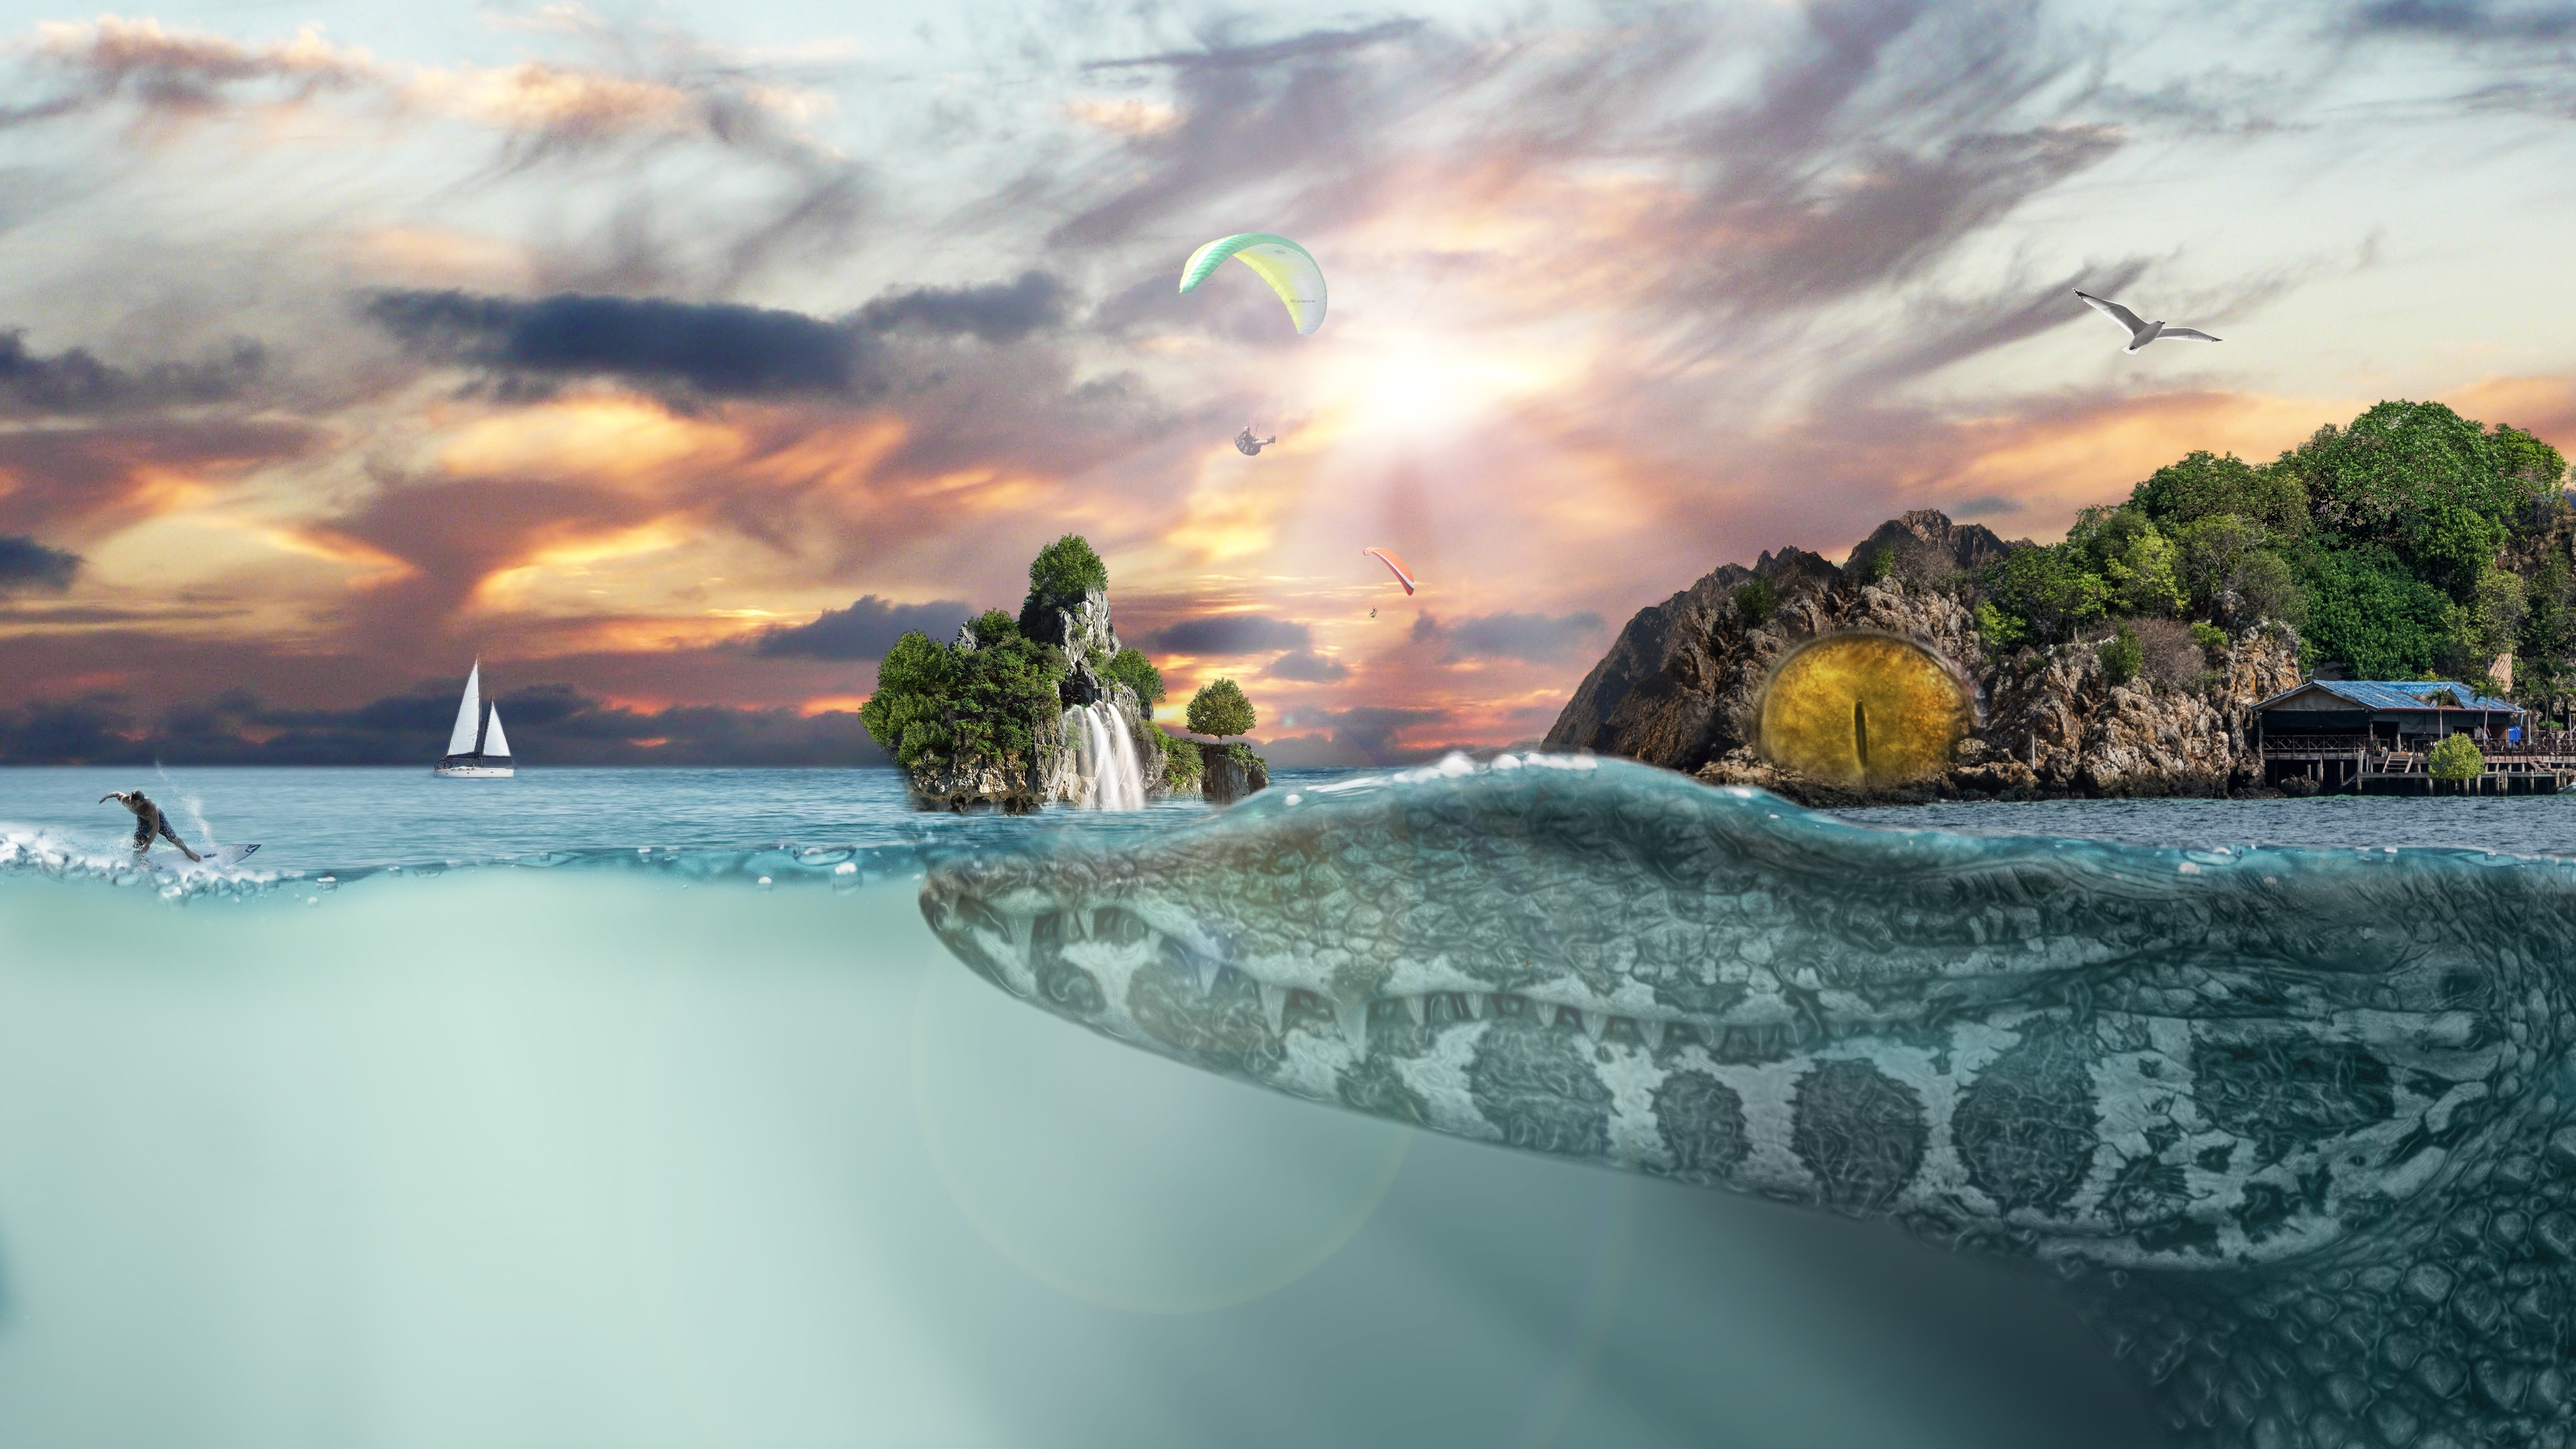 sea island fantasy, hd creative, 4k wallpapers, images, backgrounds